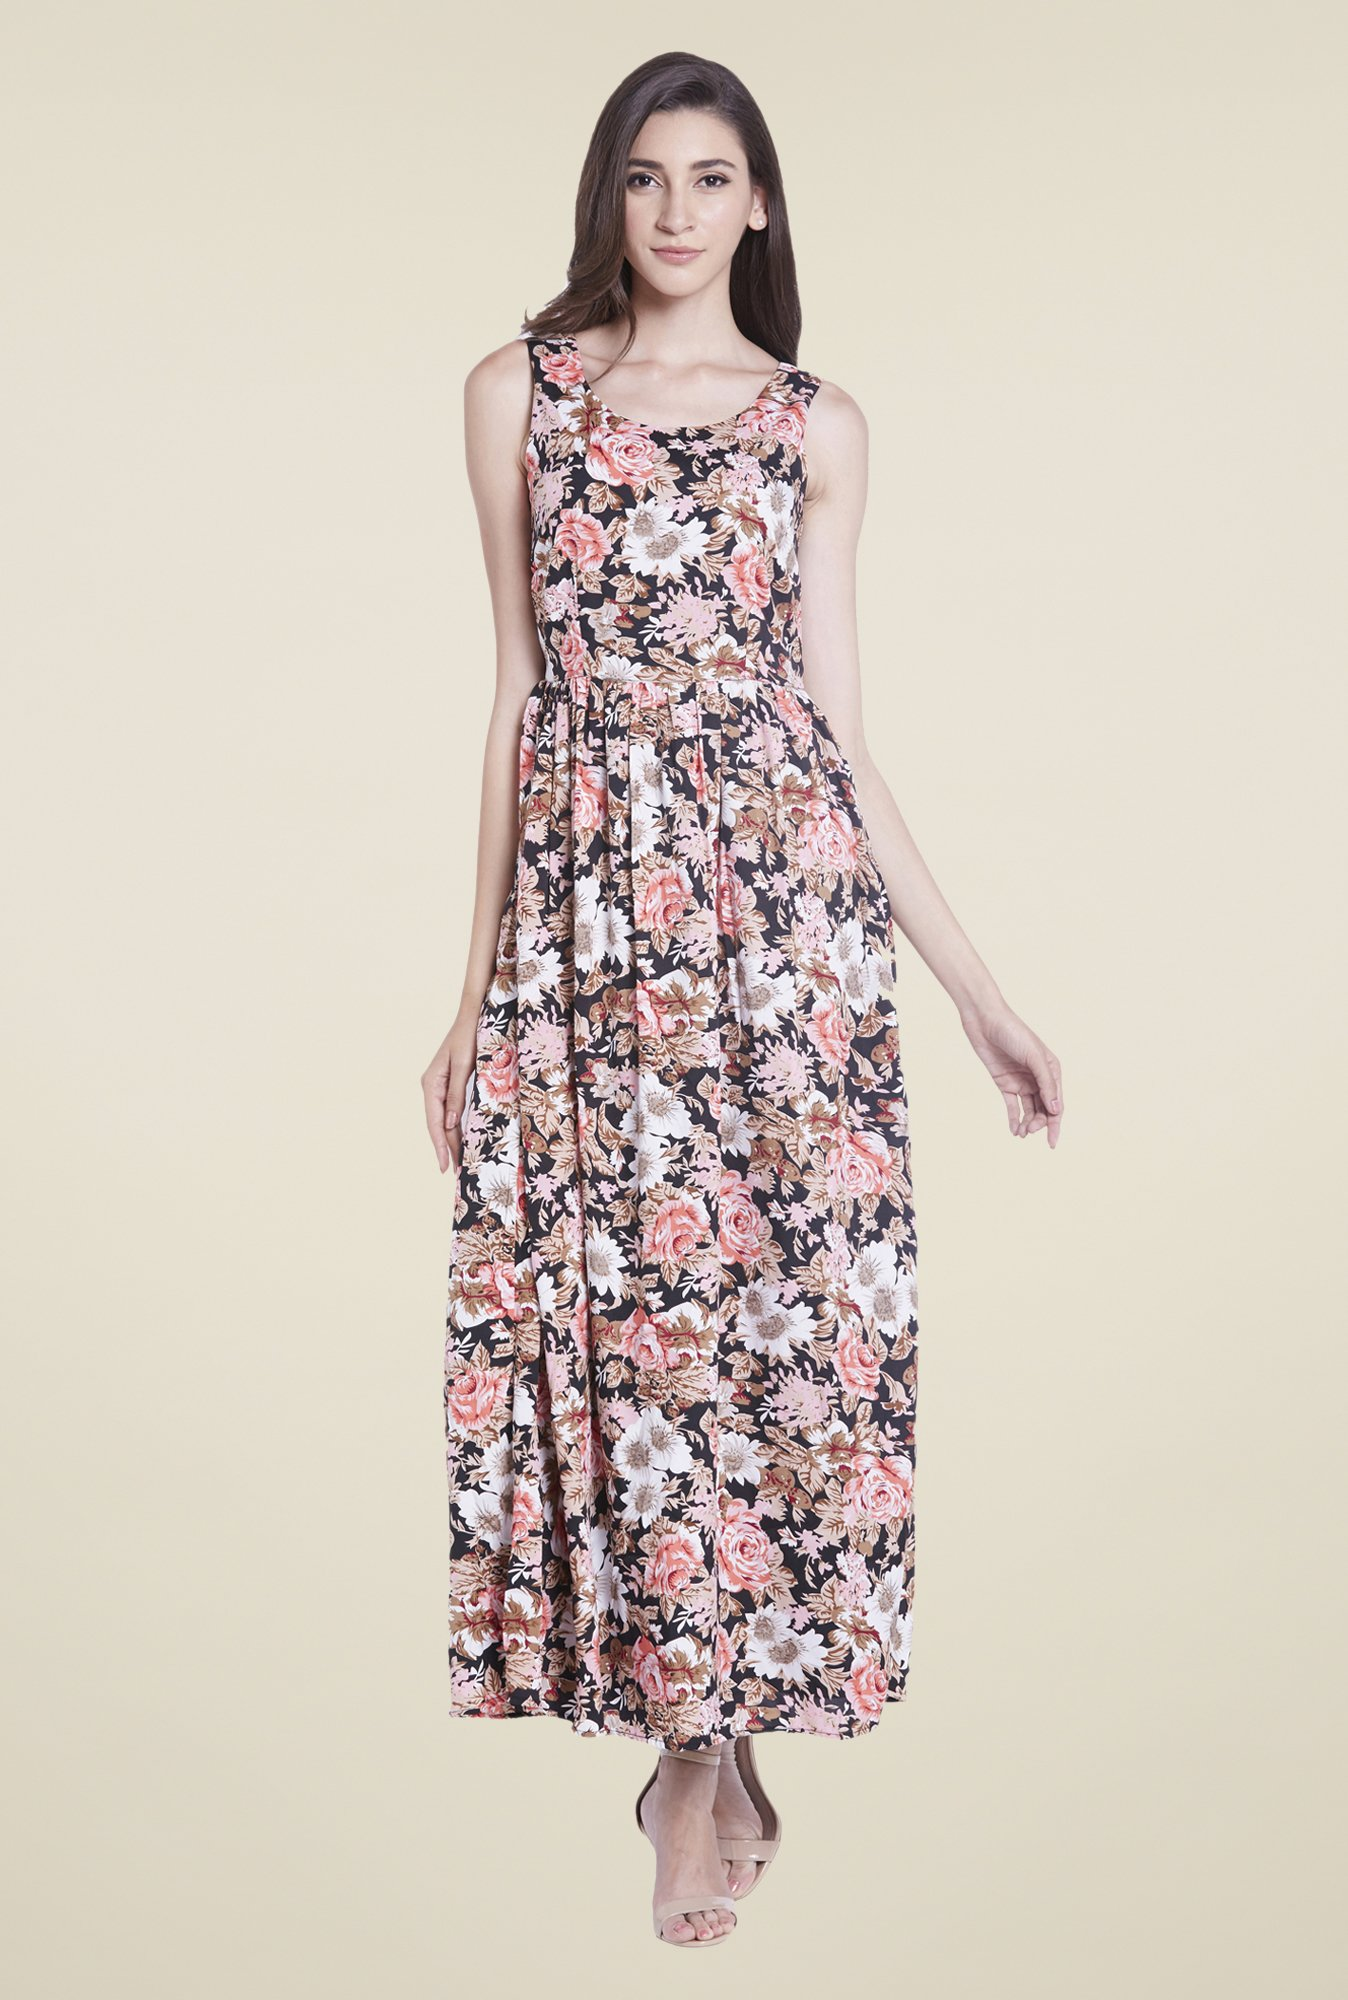 Globus Black Floral Print Maxi Dress